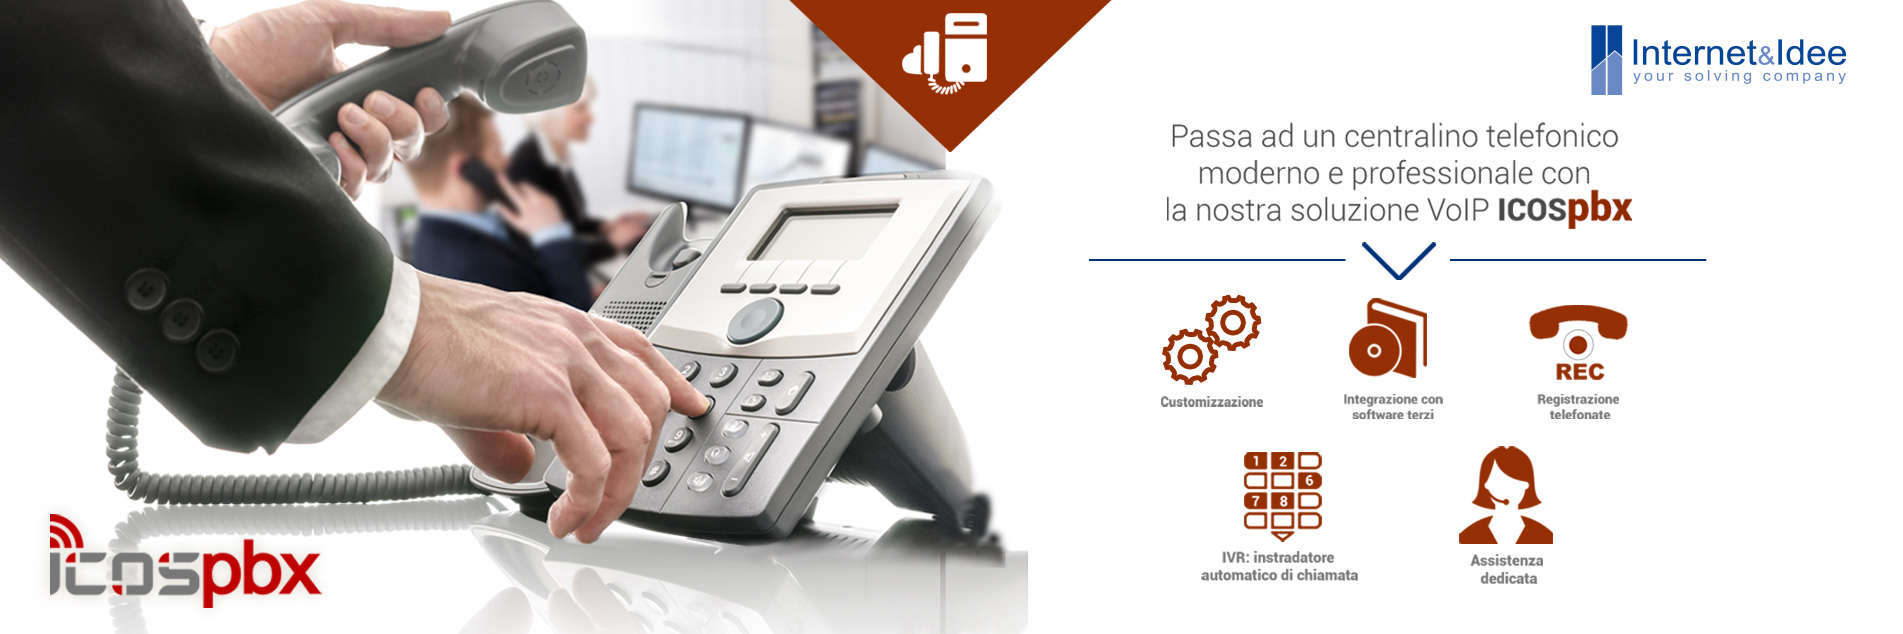 ICOSbpx: The VoIP solution complete and easy to handle